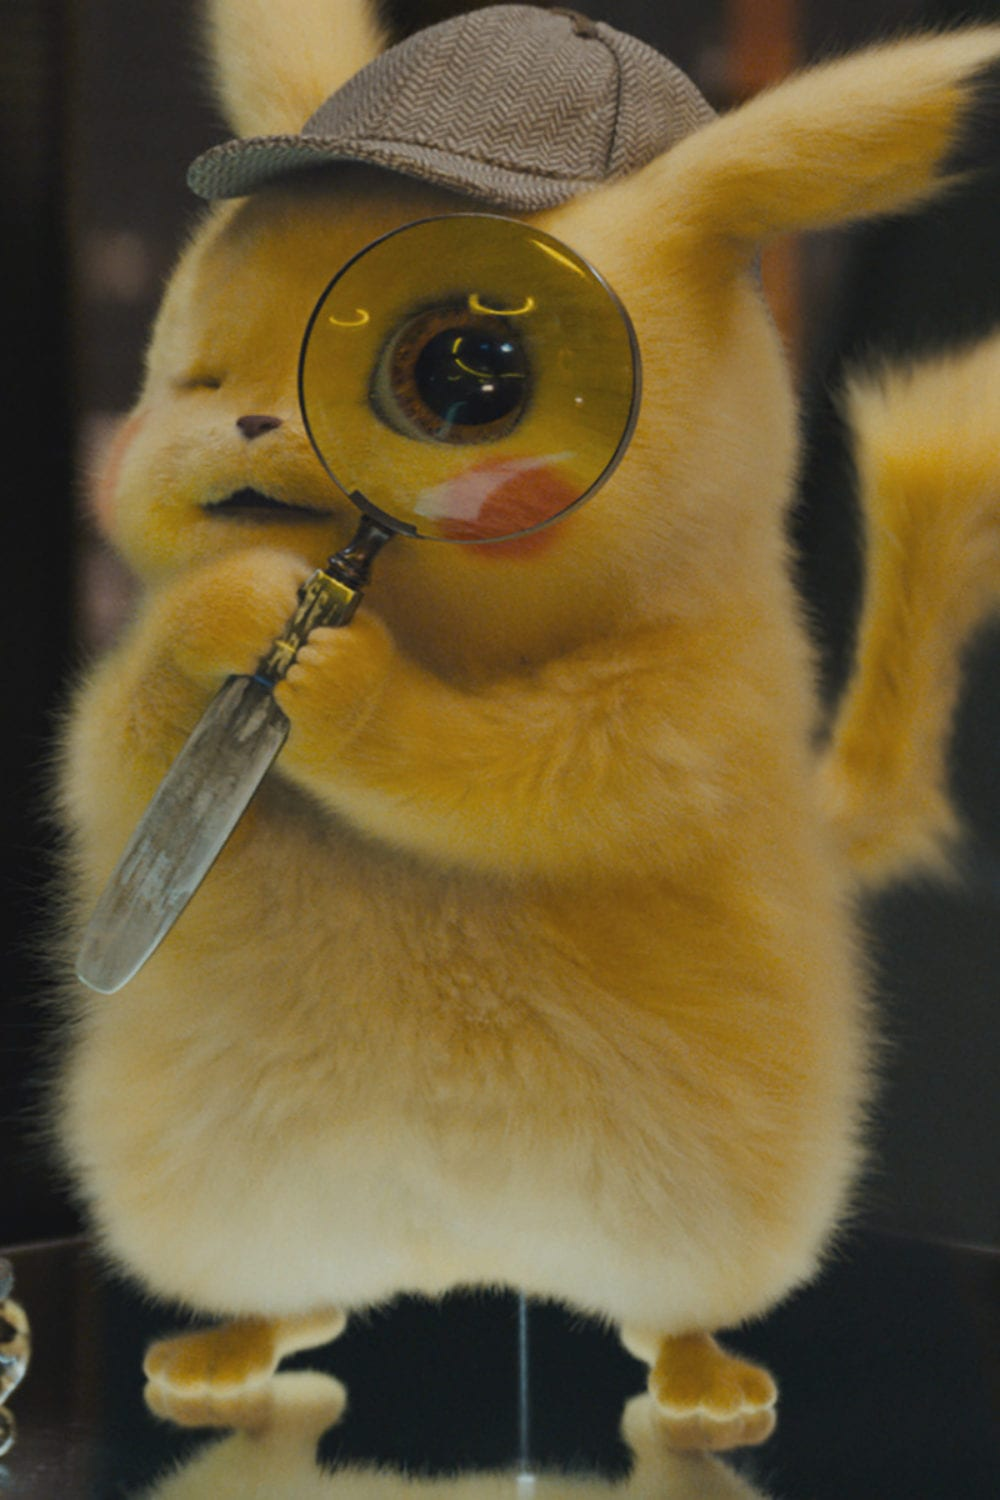 Heartfelt Detective Pikachu Moview Review A Magical Mess